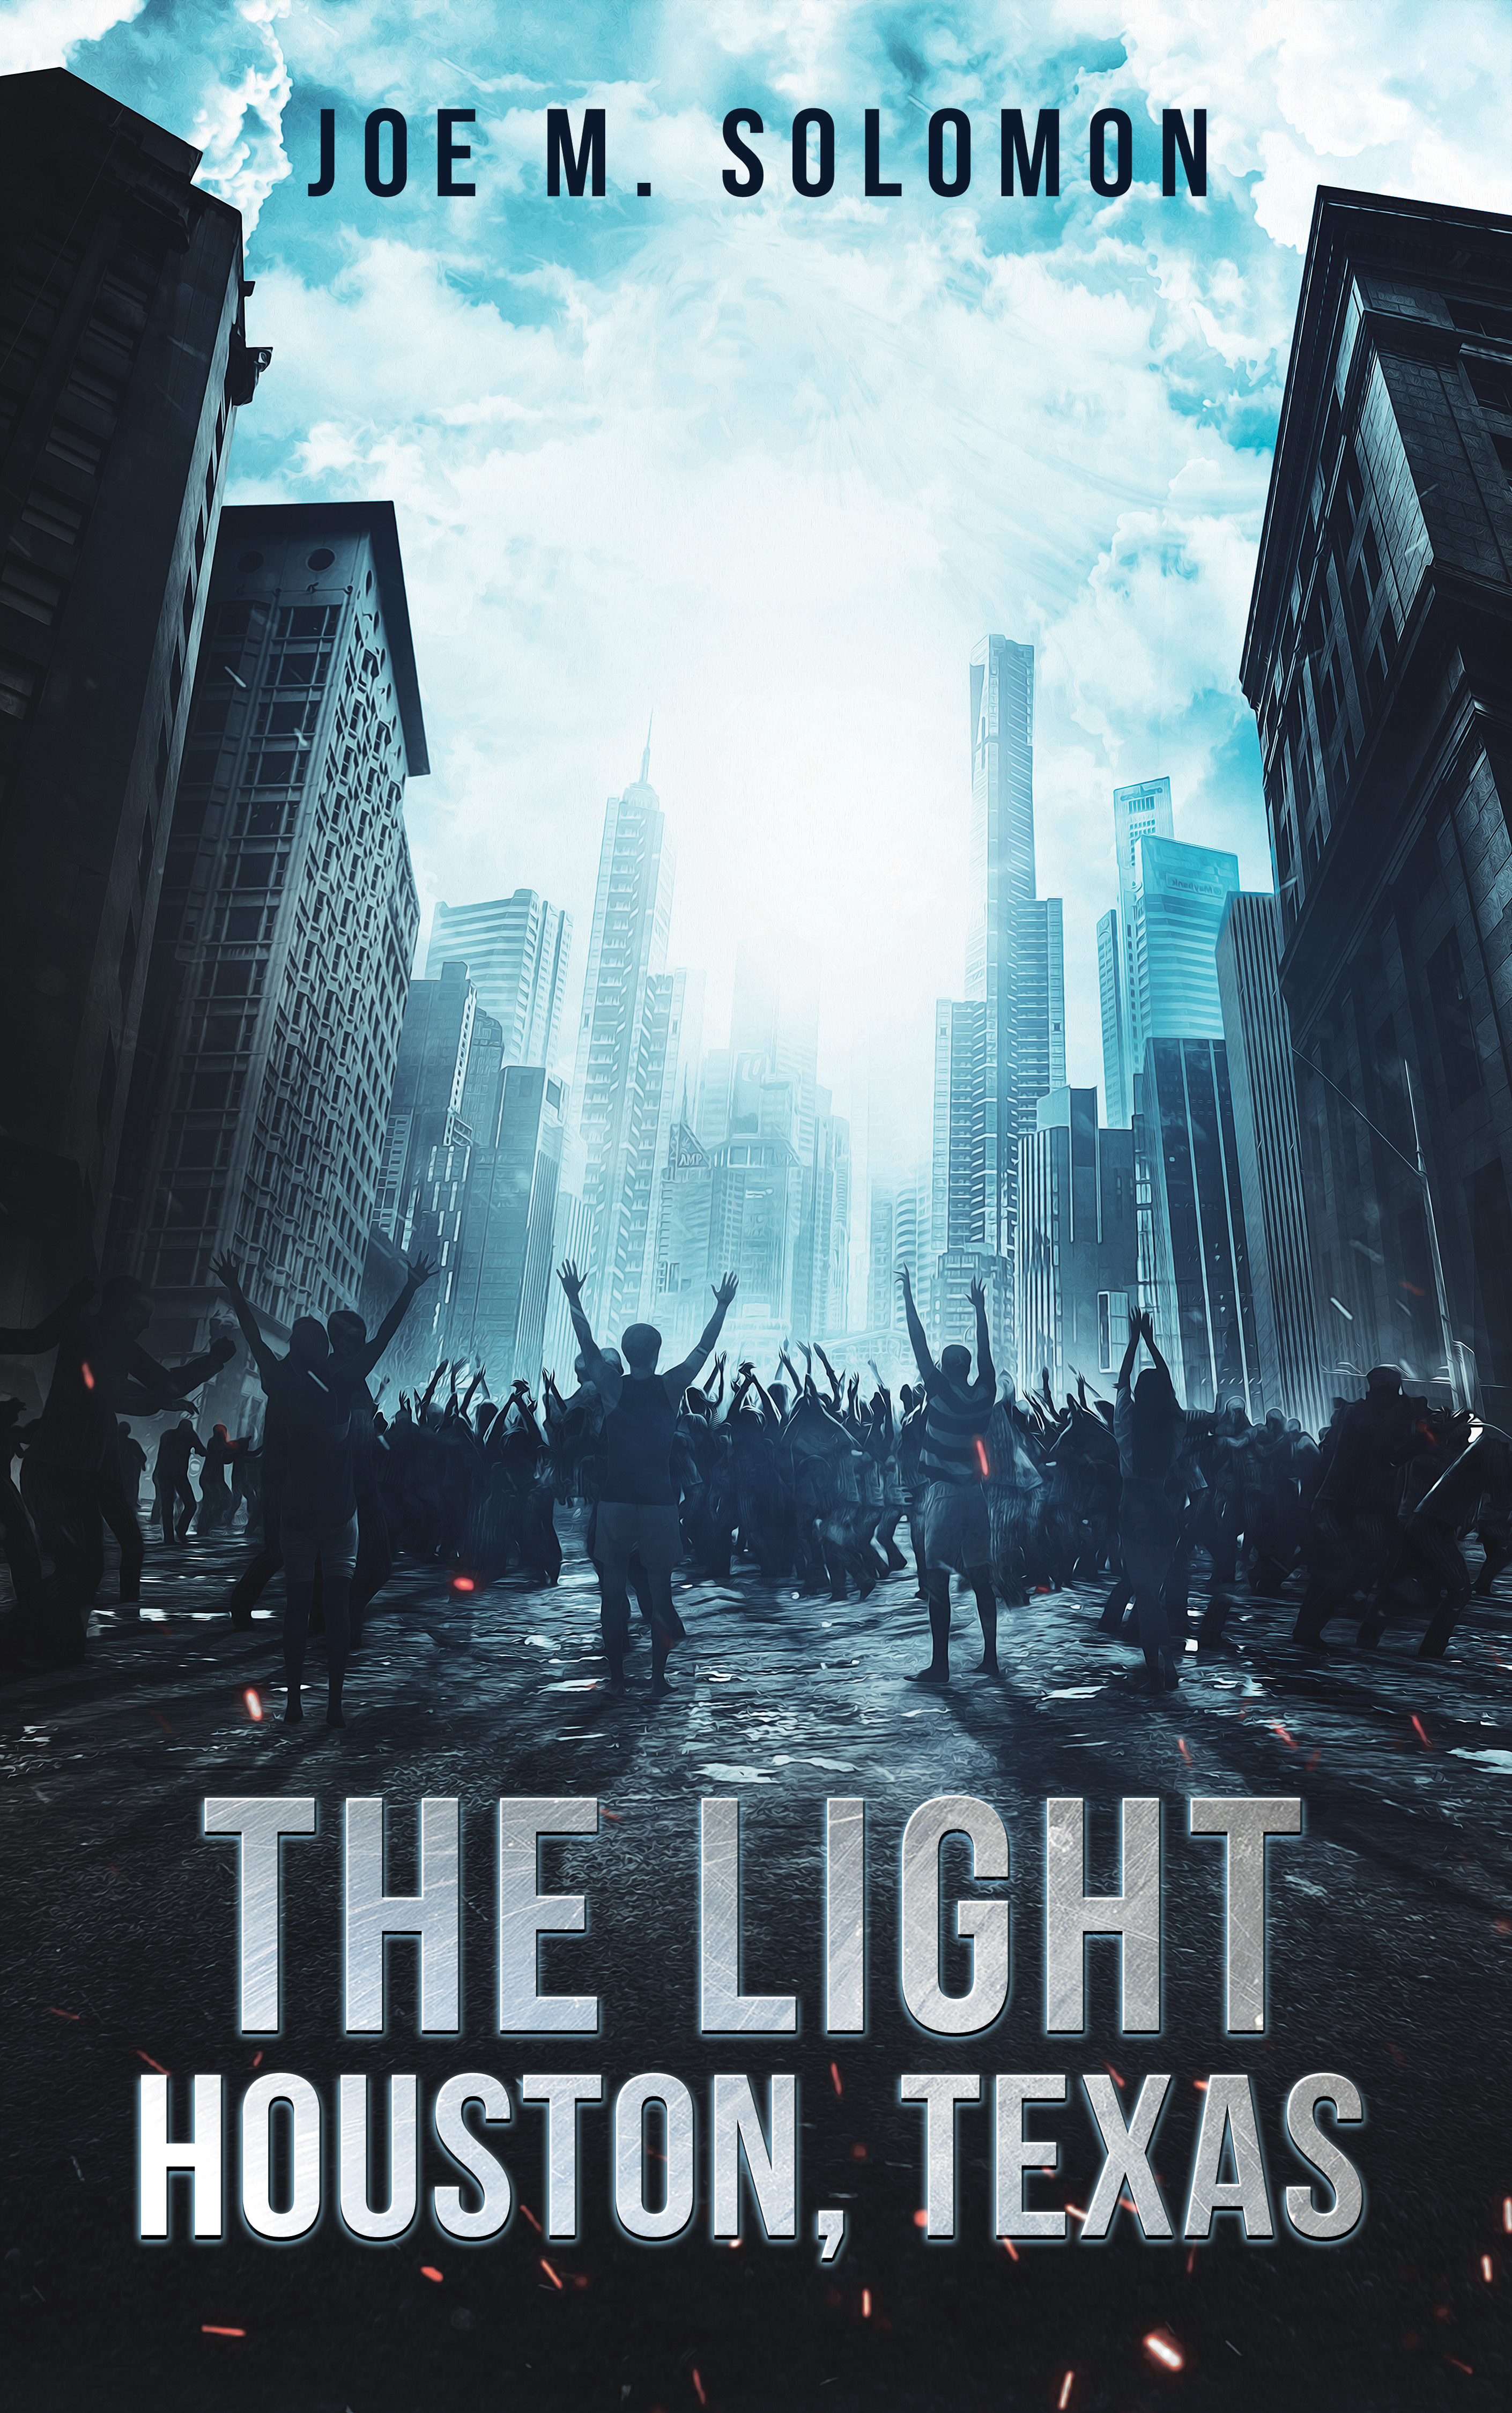 THE LIGHT: HOUSTON TEXAS Book Cover